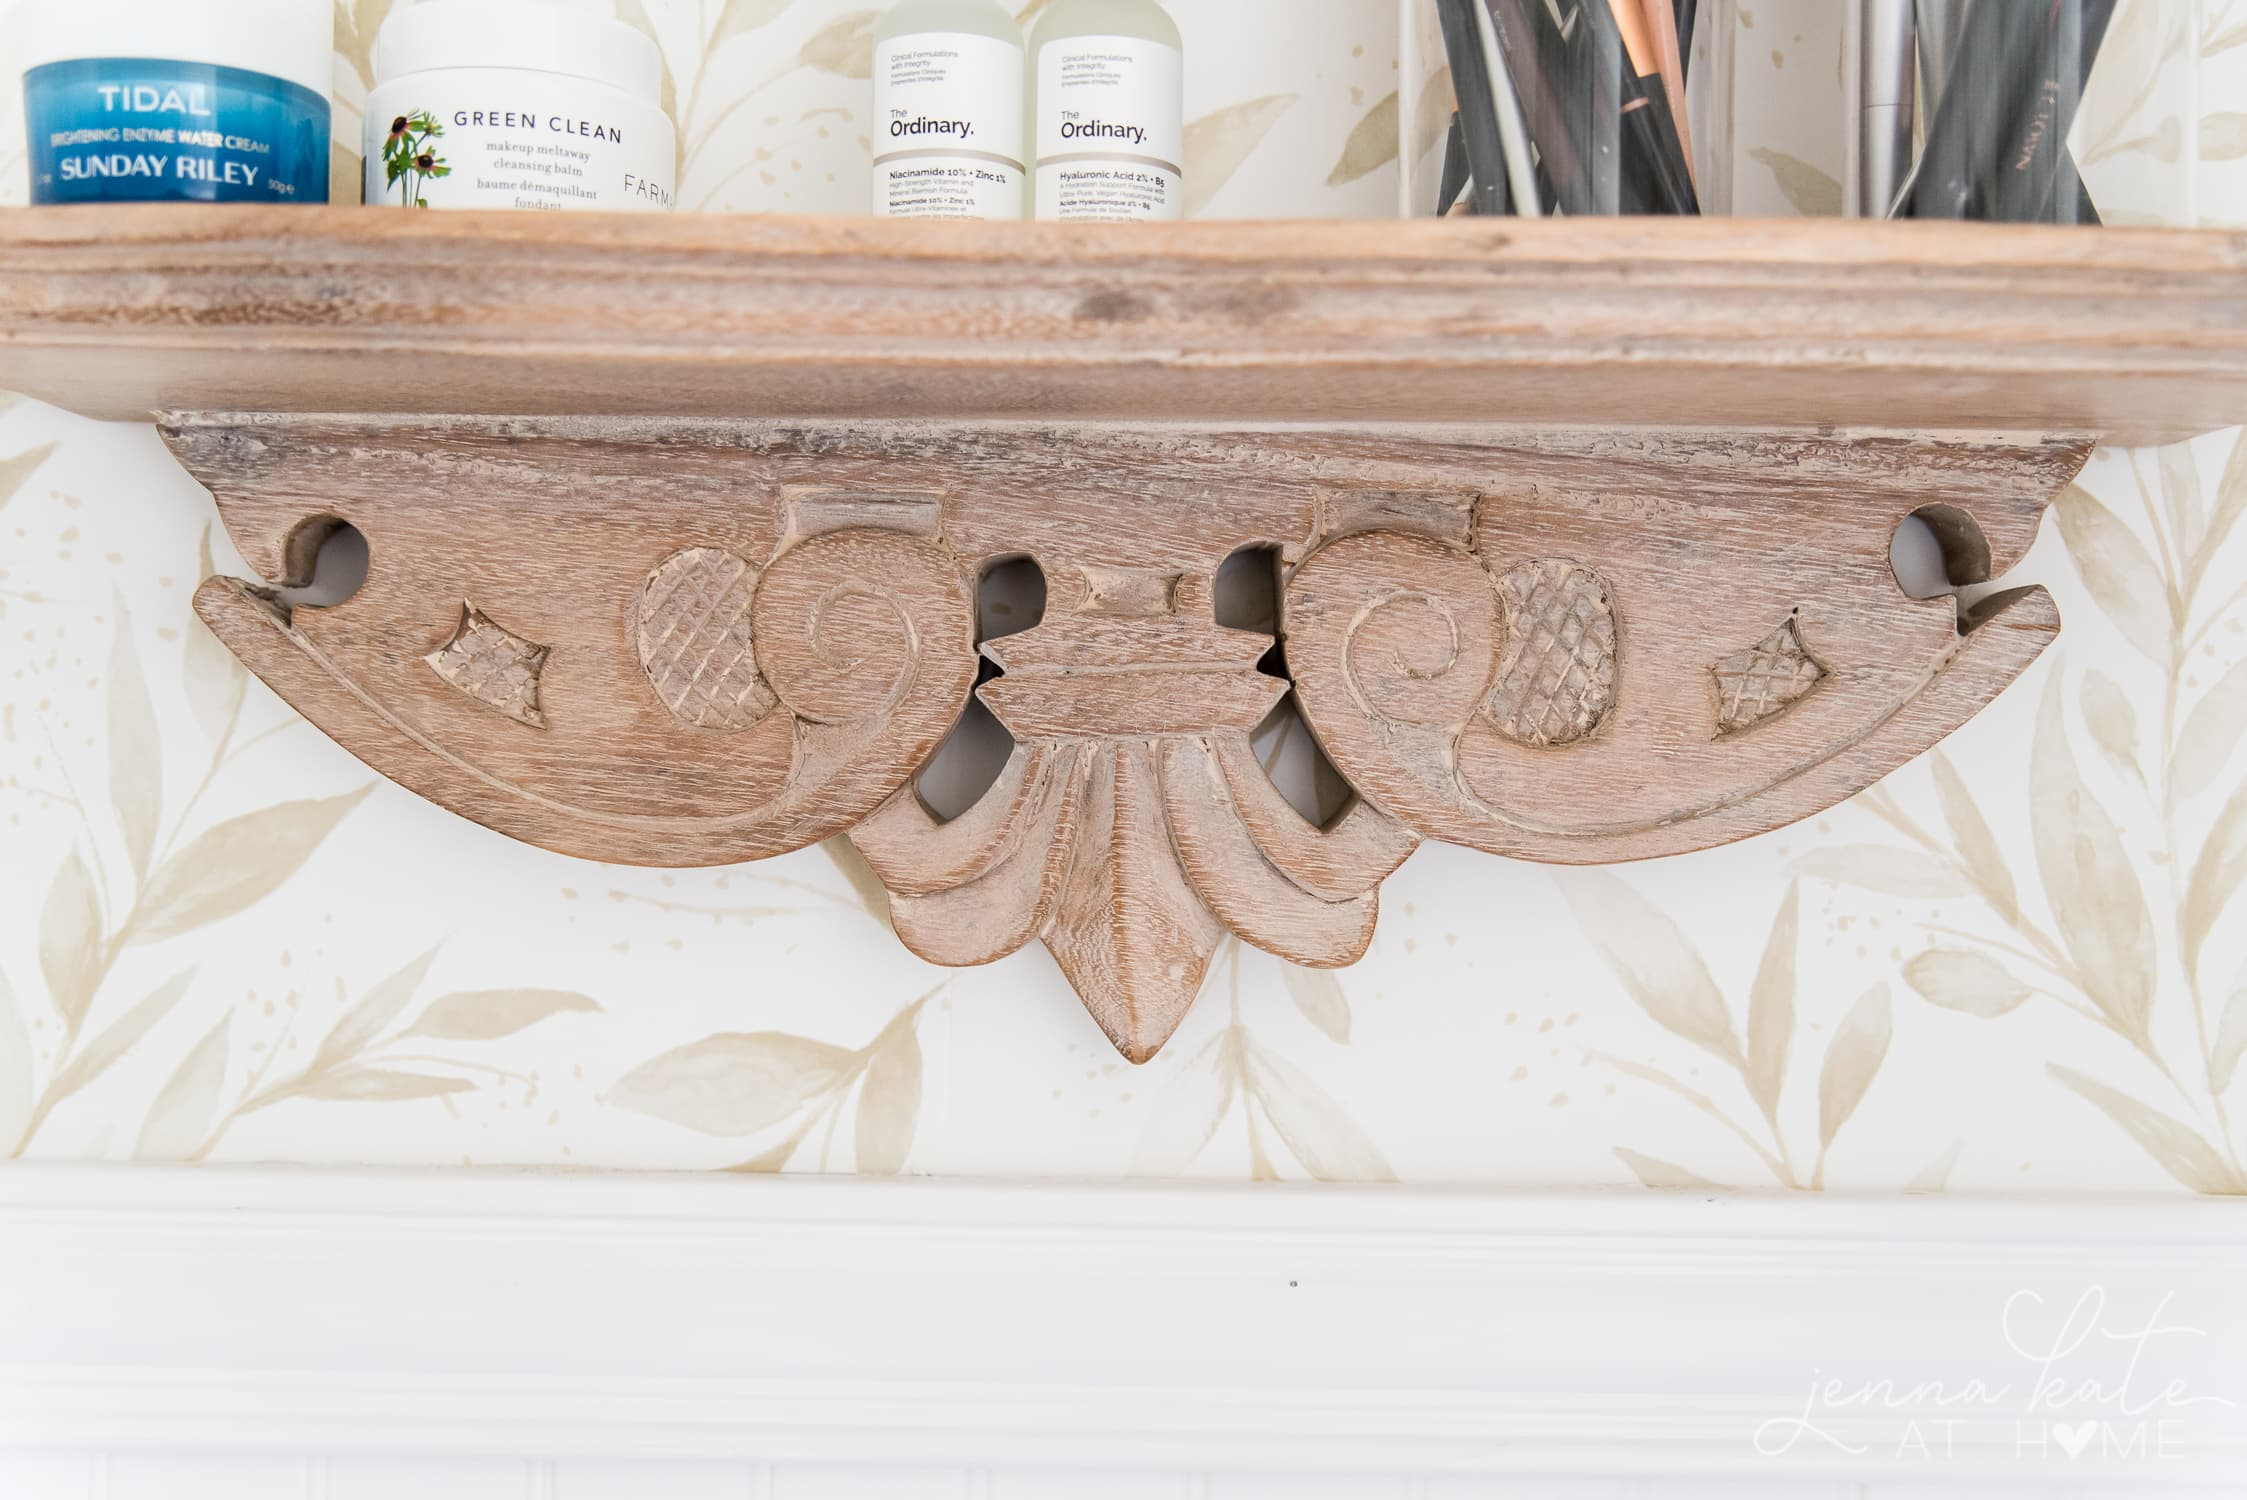 Closeup of carved details on the natural wood bathroom shelf